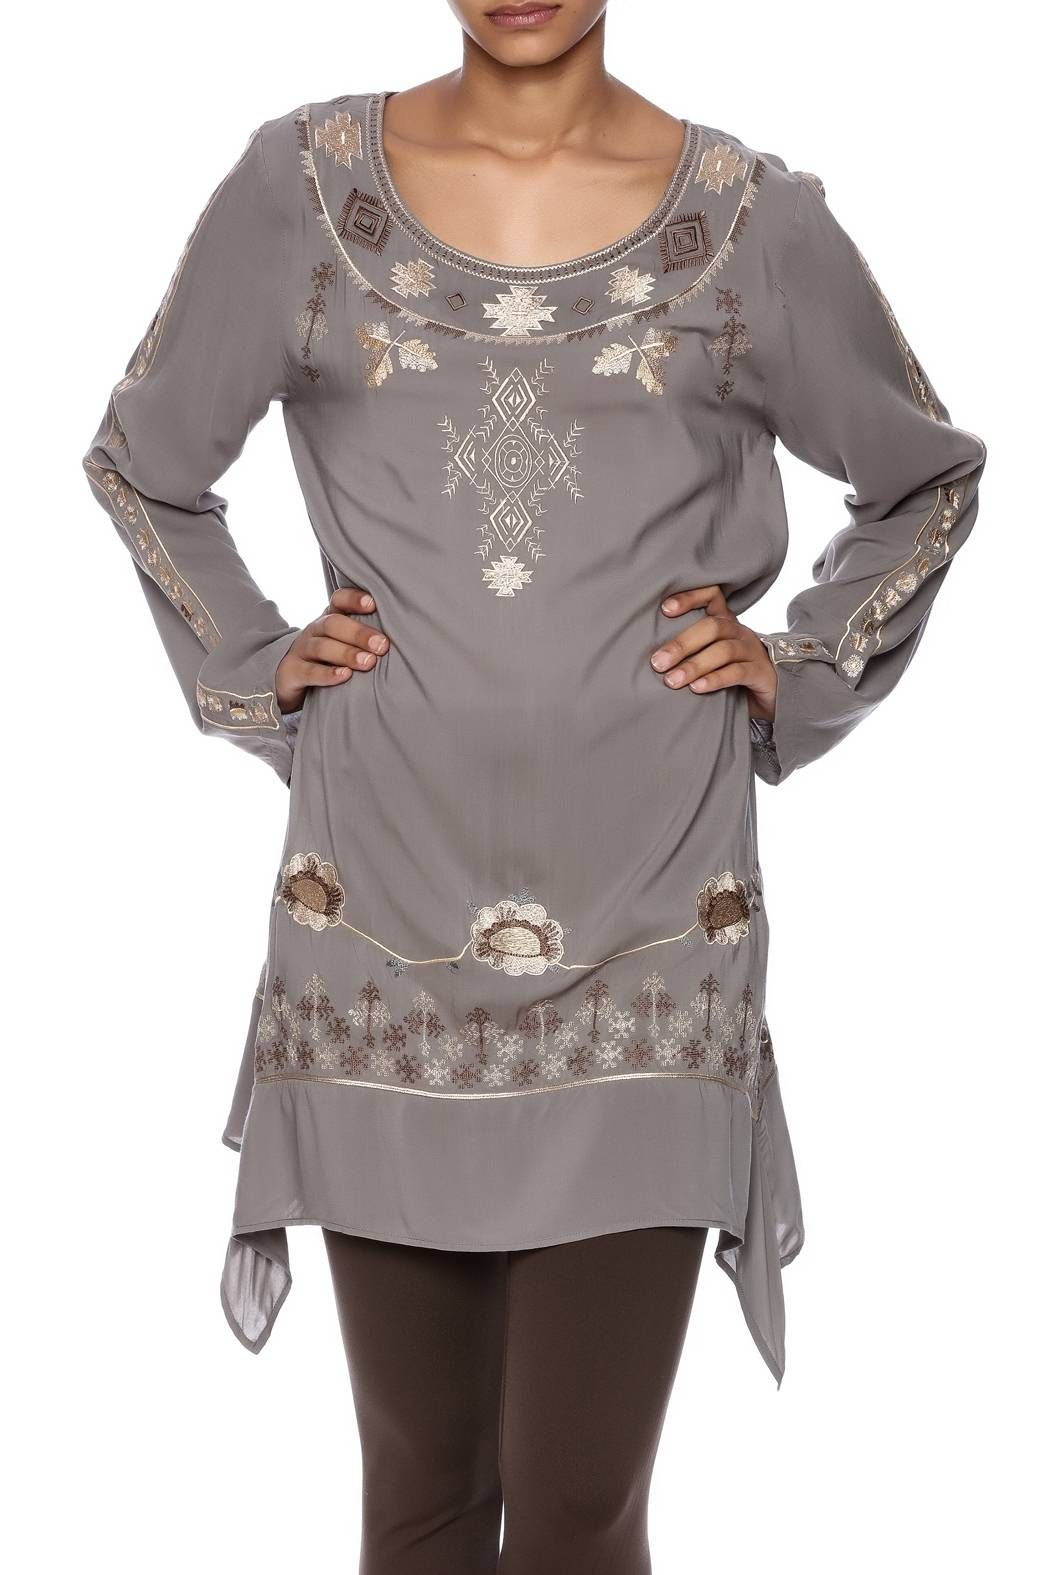 Embroidered grey tunic with embroidery detailing, long sleeves, asymmetric sides and a round neckline.    Embroidered Tunic Top by Tasha Polizzi. Clothing - Tops - Long Sleeve Clothing - Tops - Tunics Saratoga, Wyoming